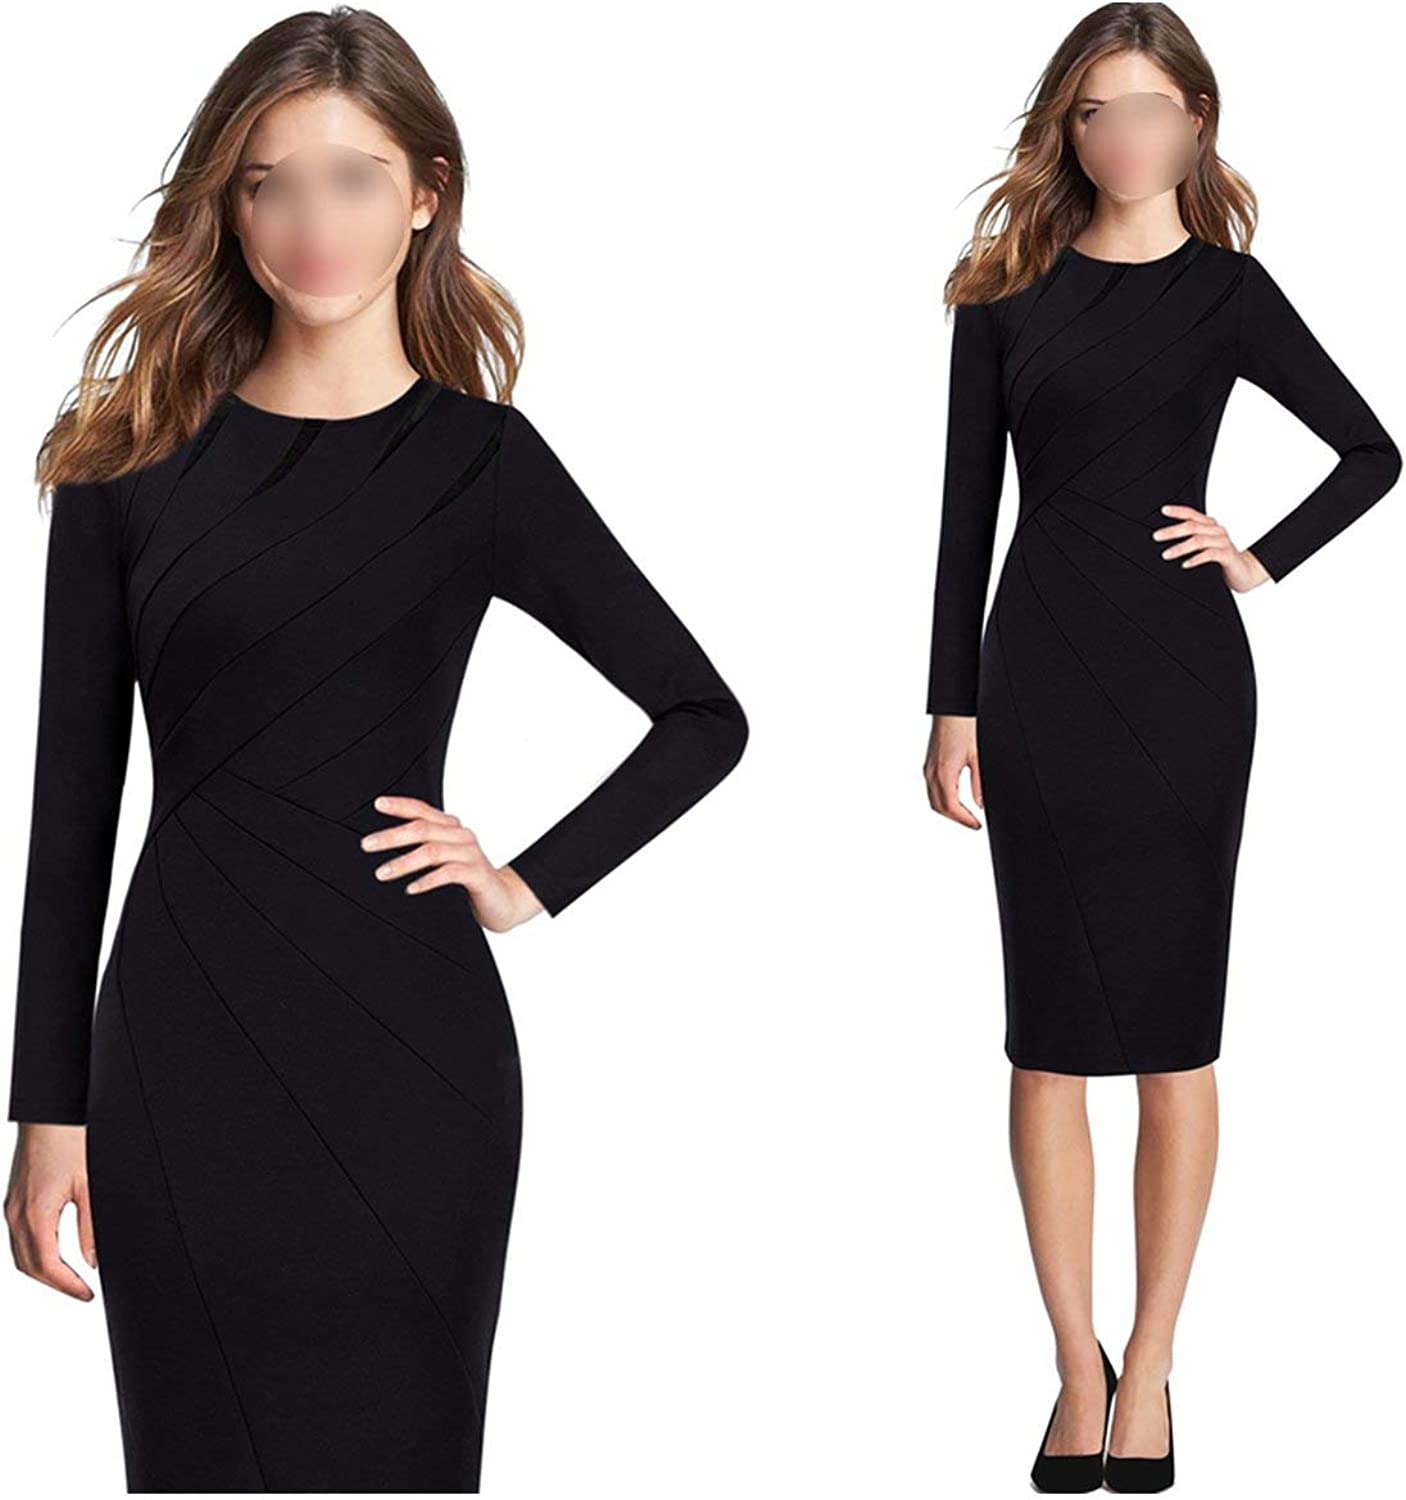 colorfulspace Womens Autumn Winter Elegant Patchwork Slim Casual Party Fitted Bodycon Pencil Sheath Dress 1045